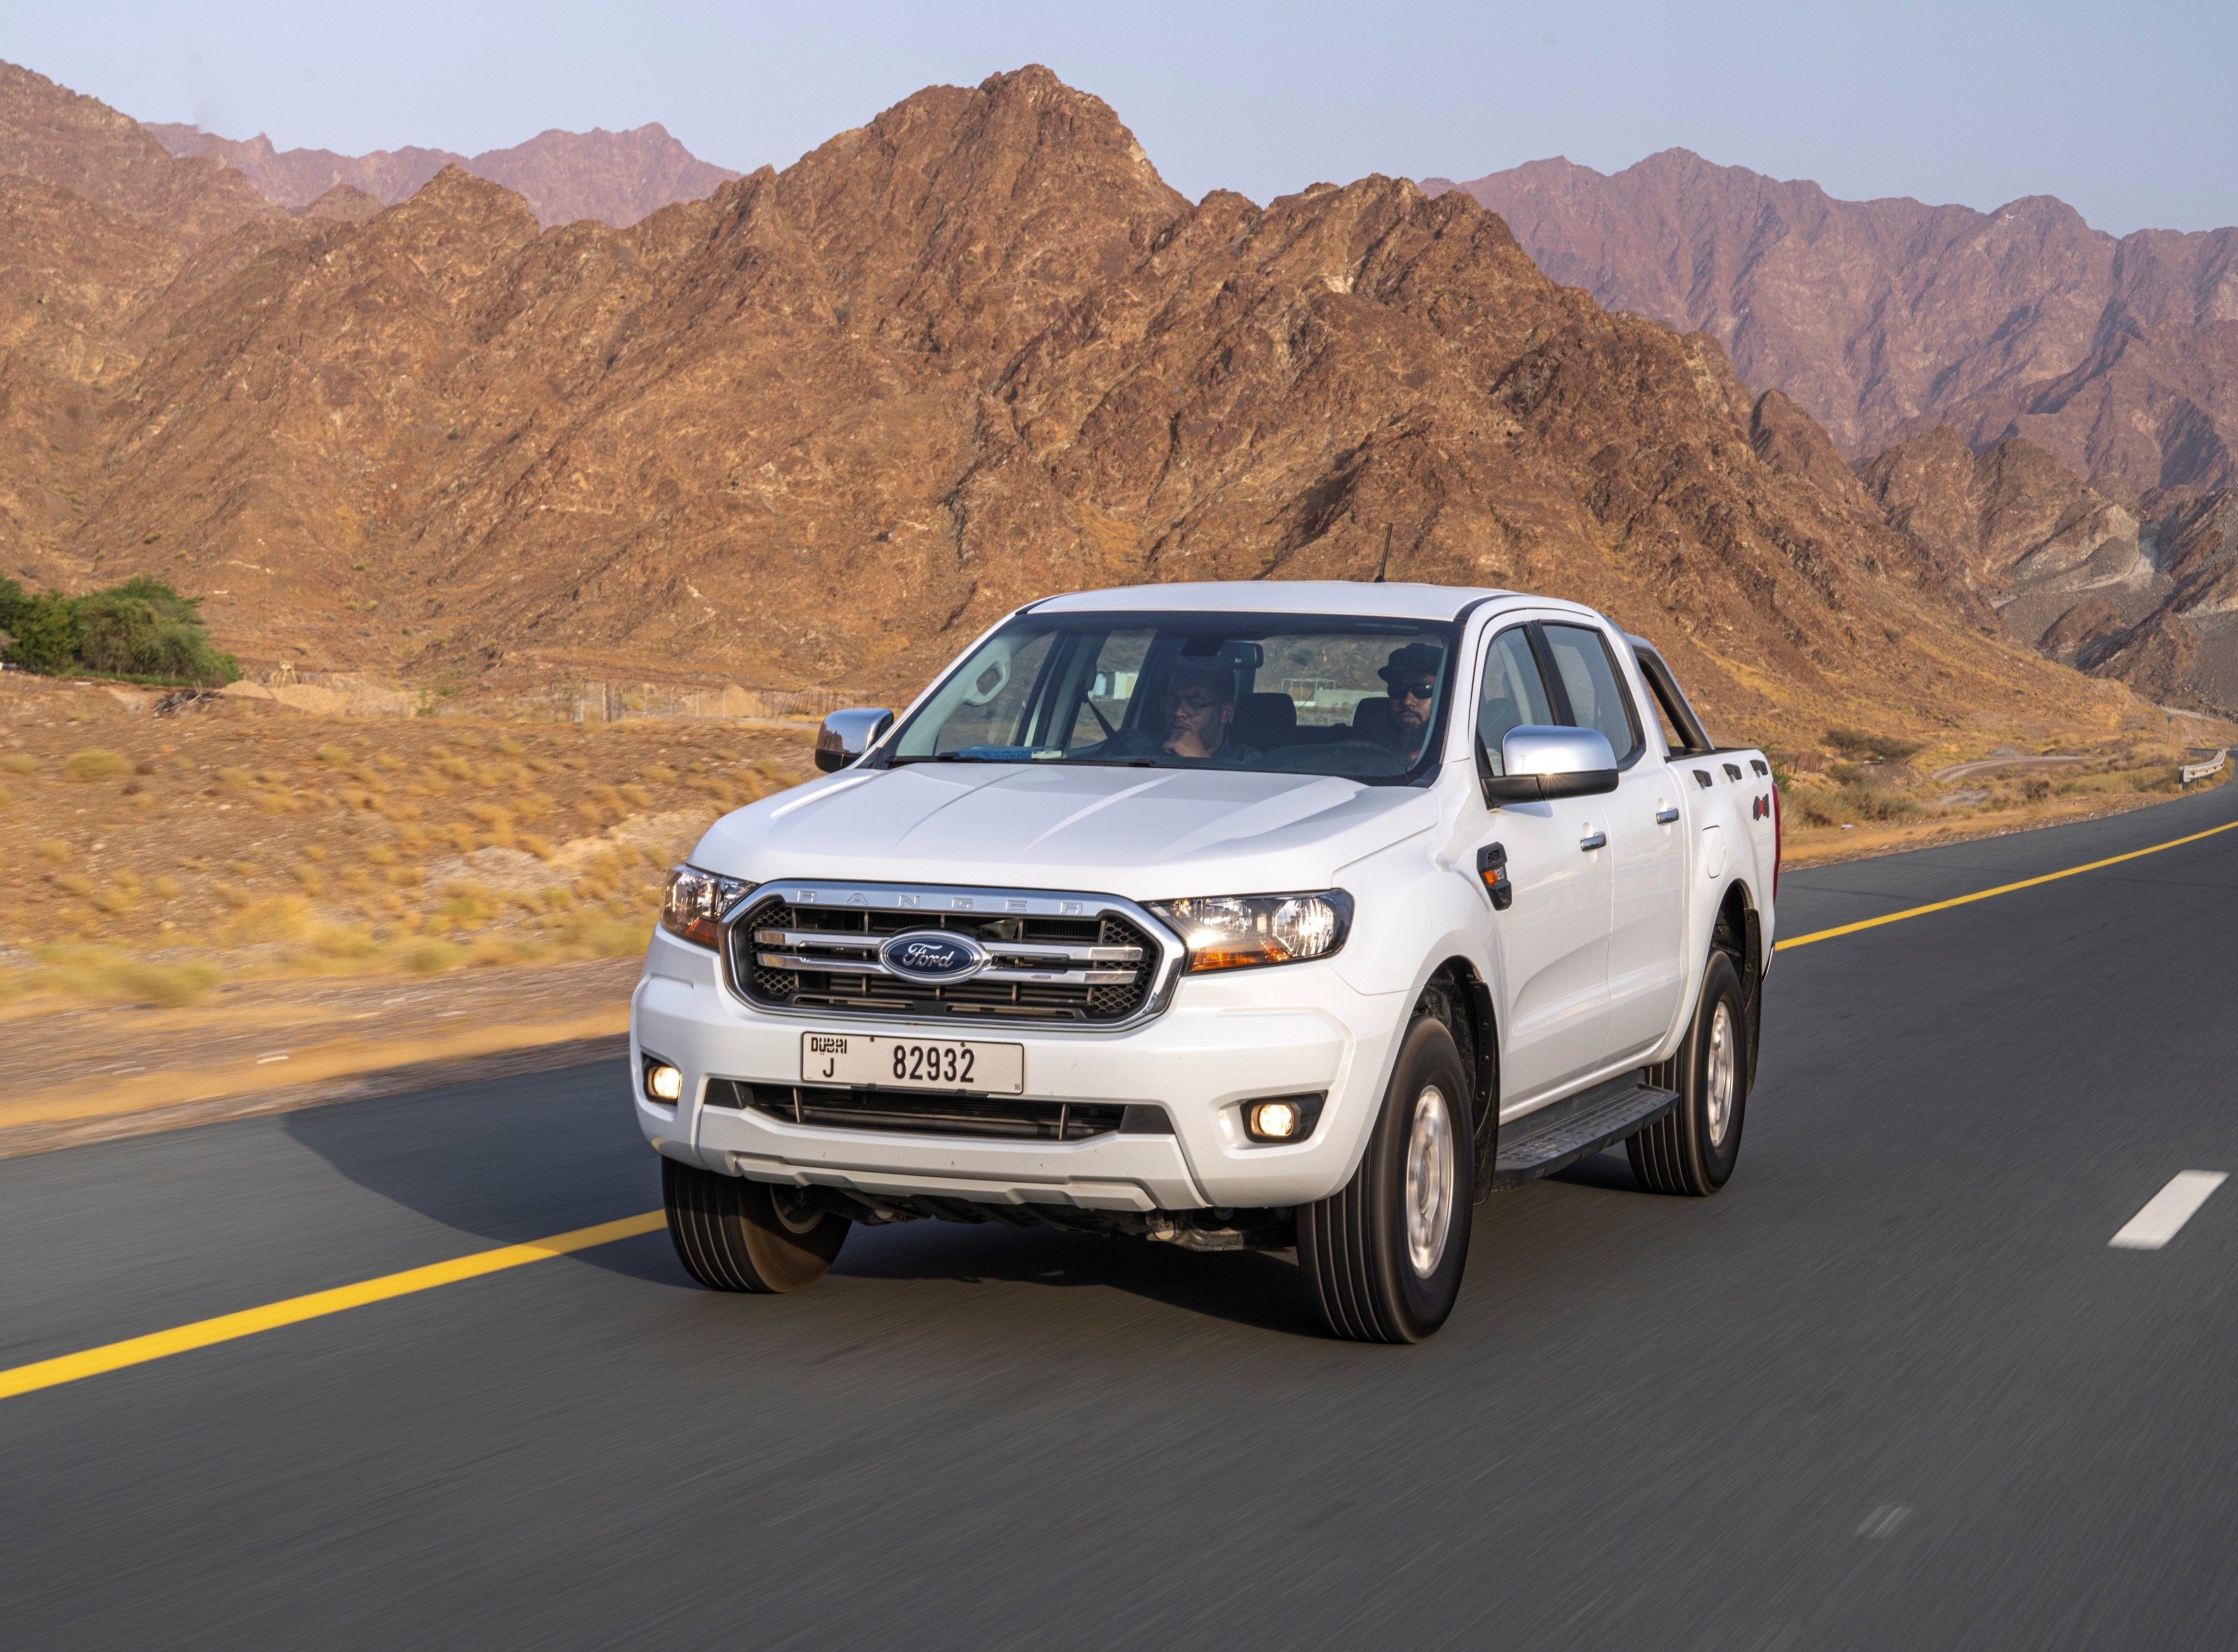 Ford Ranger achieves more than 1,250 km on a single tank of diesel